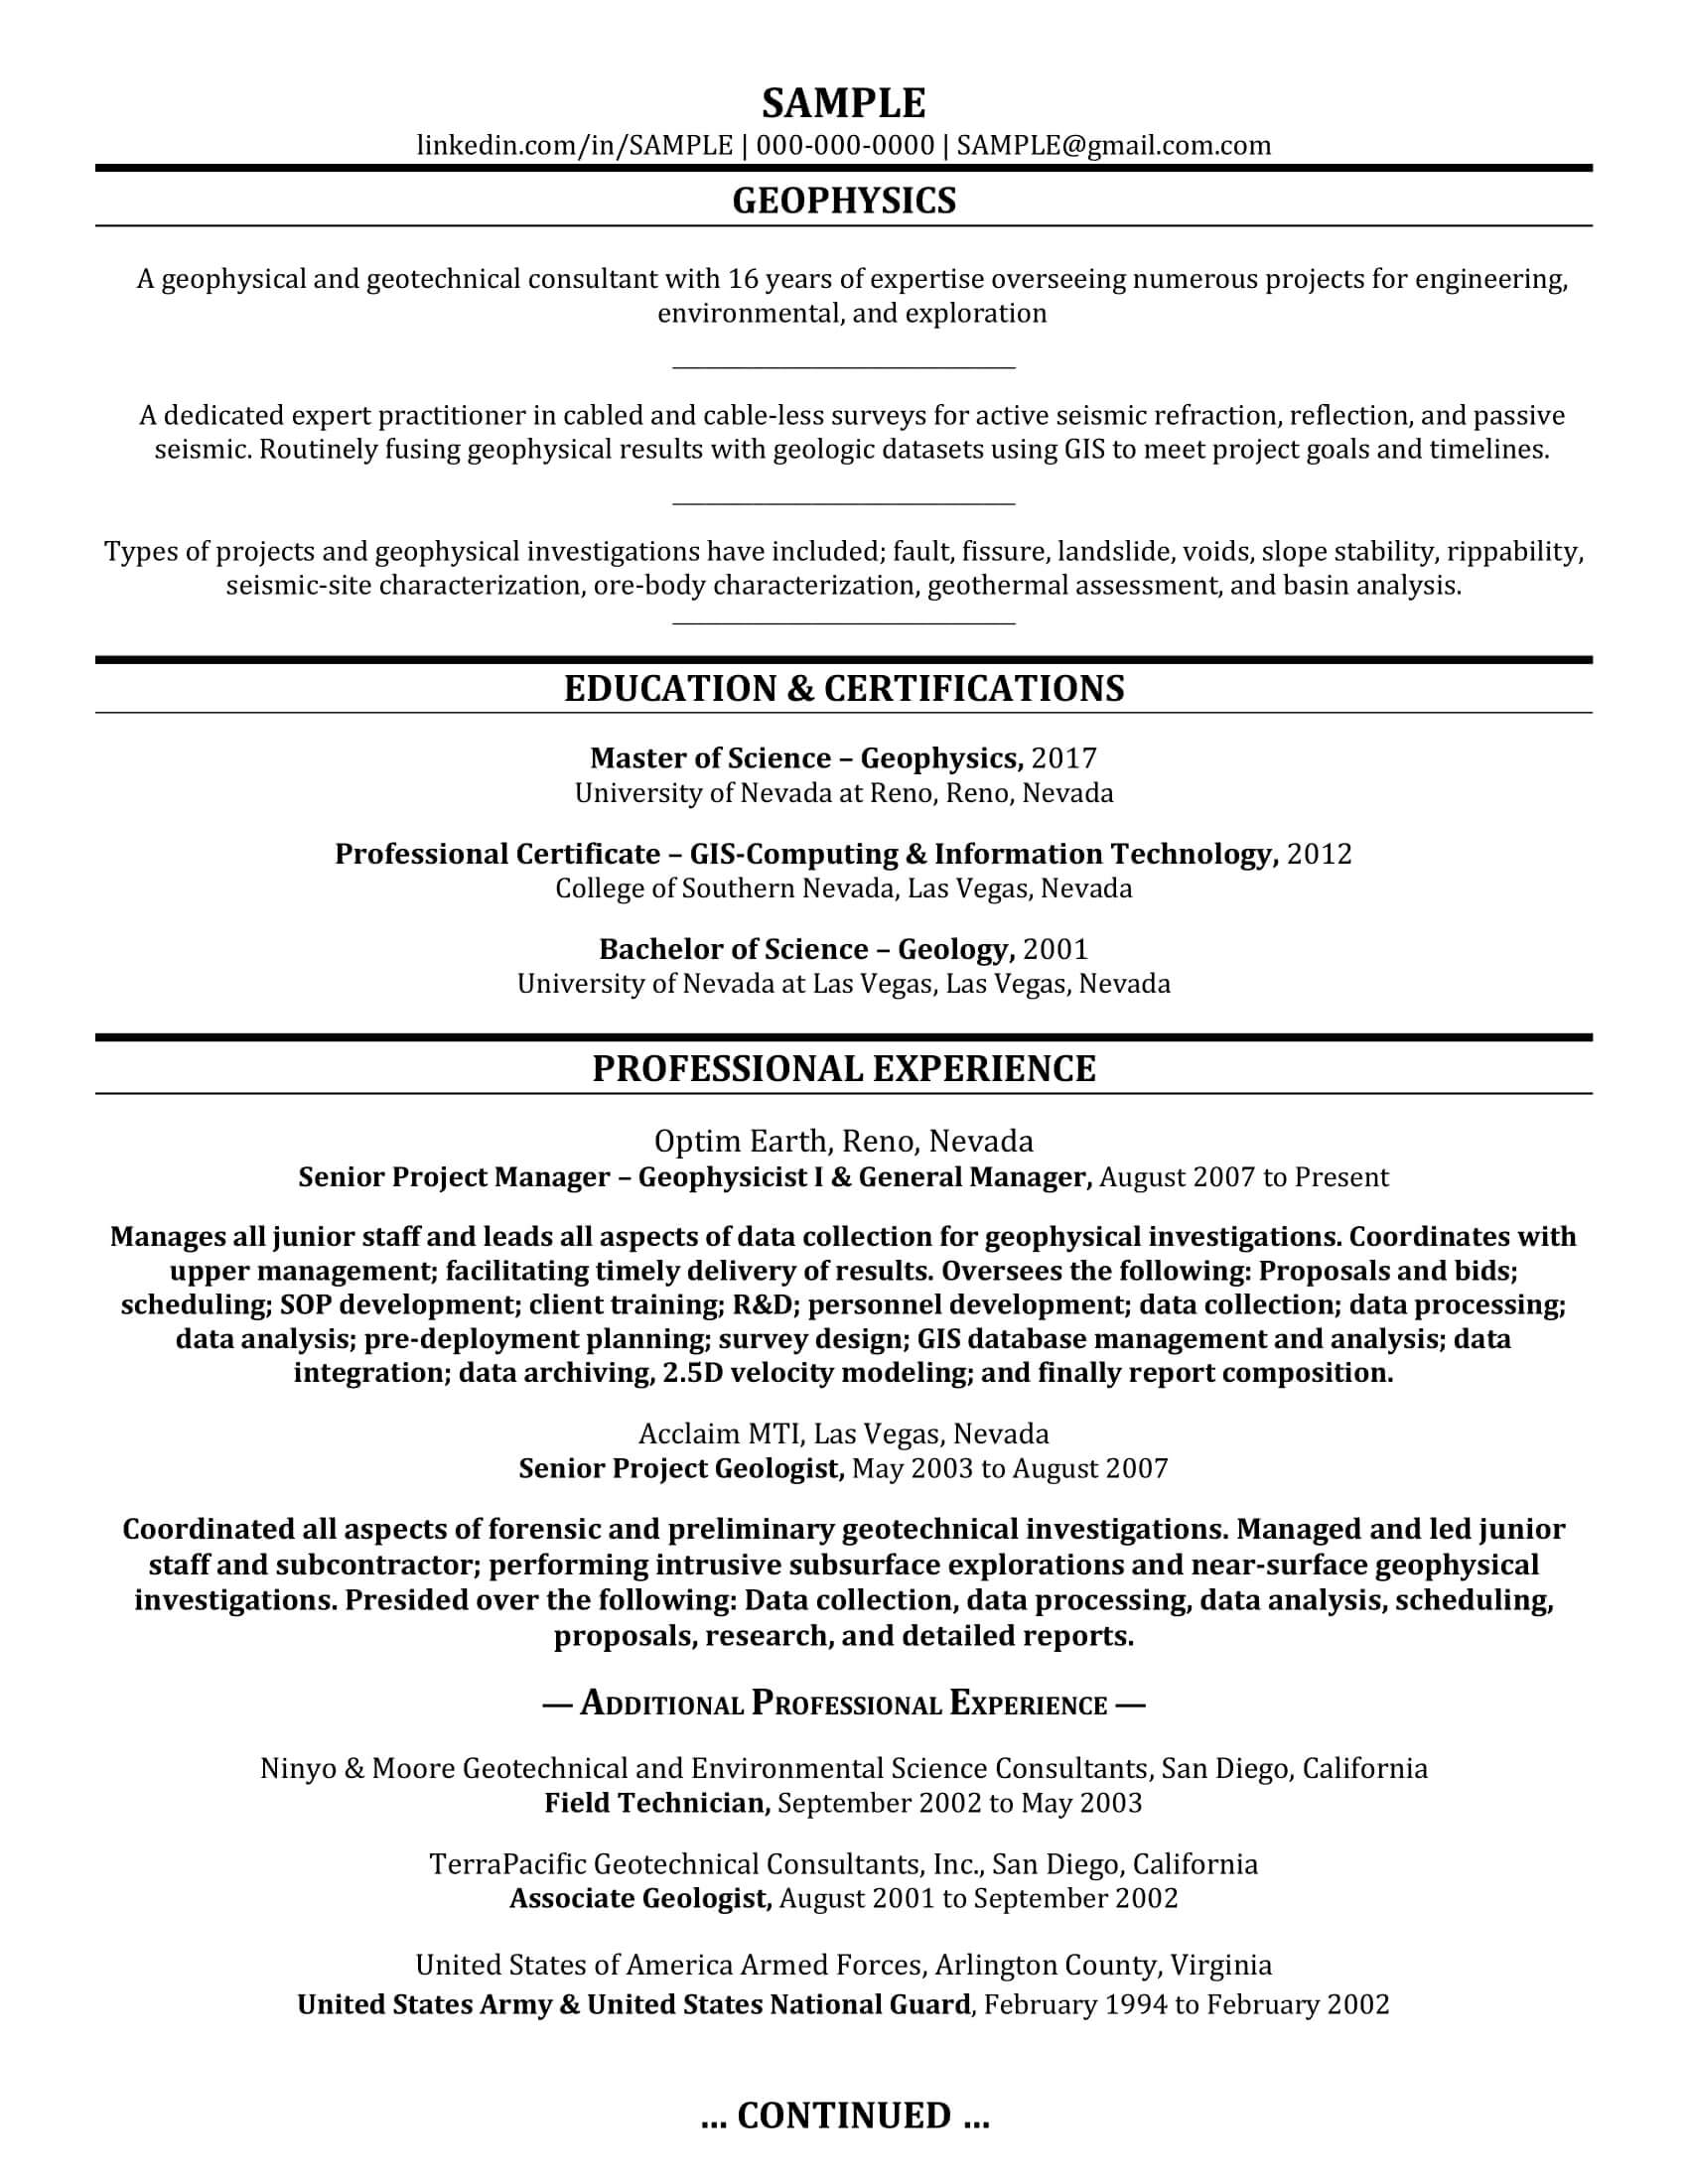 cv vs resume differences explained which one you should use professional vitae sample Resume Professional Vitae Vs Resume